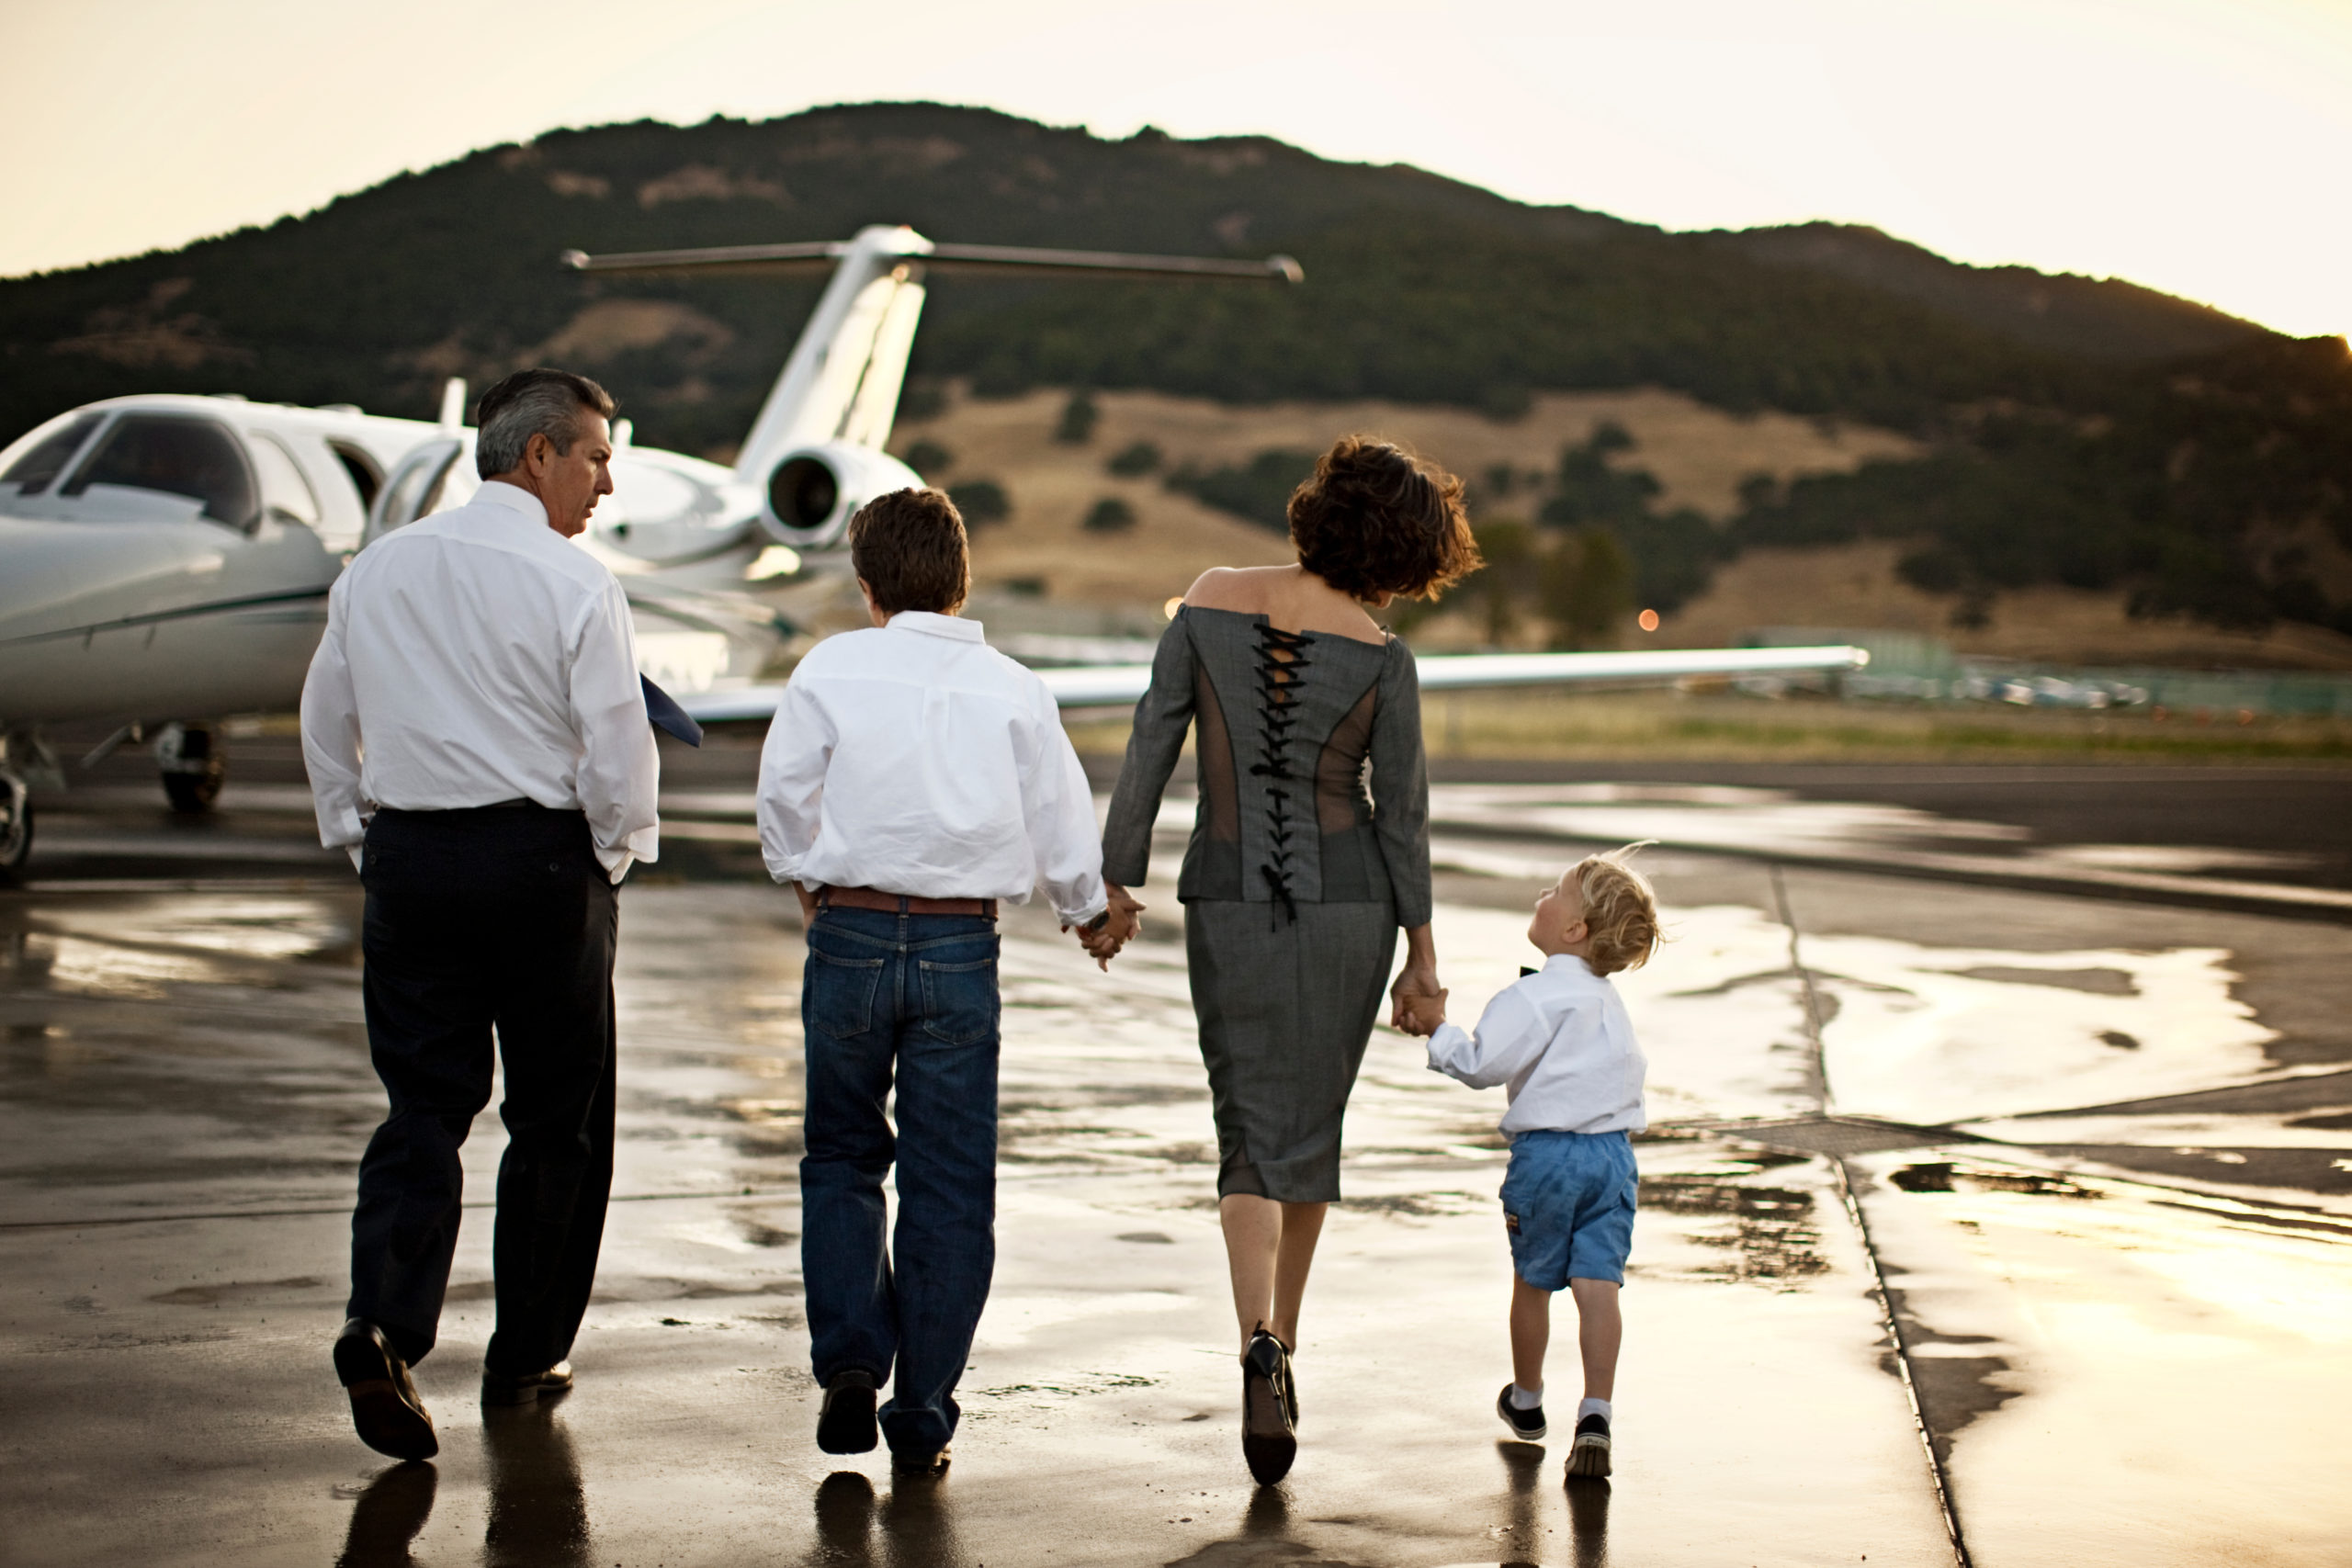 PJS PROVIDES FAMILY OFFICE AIRCRAFT MANAGEMENT